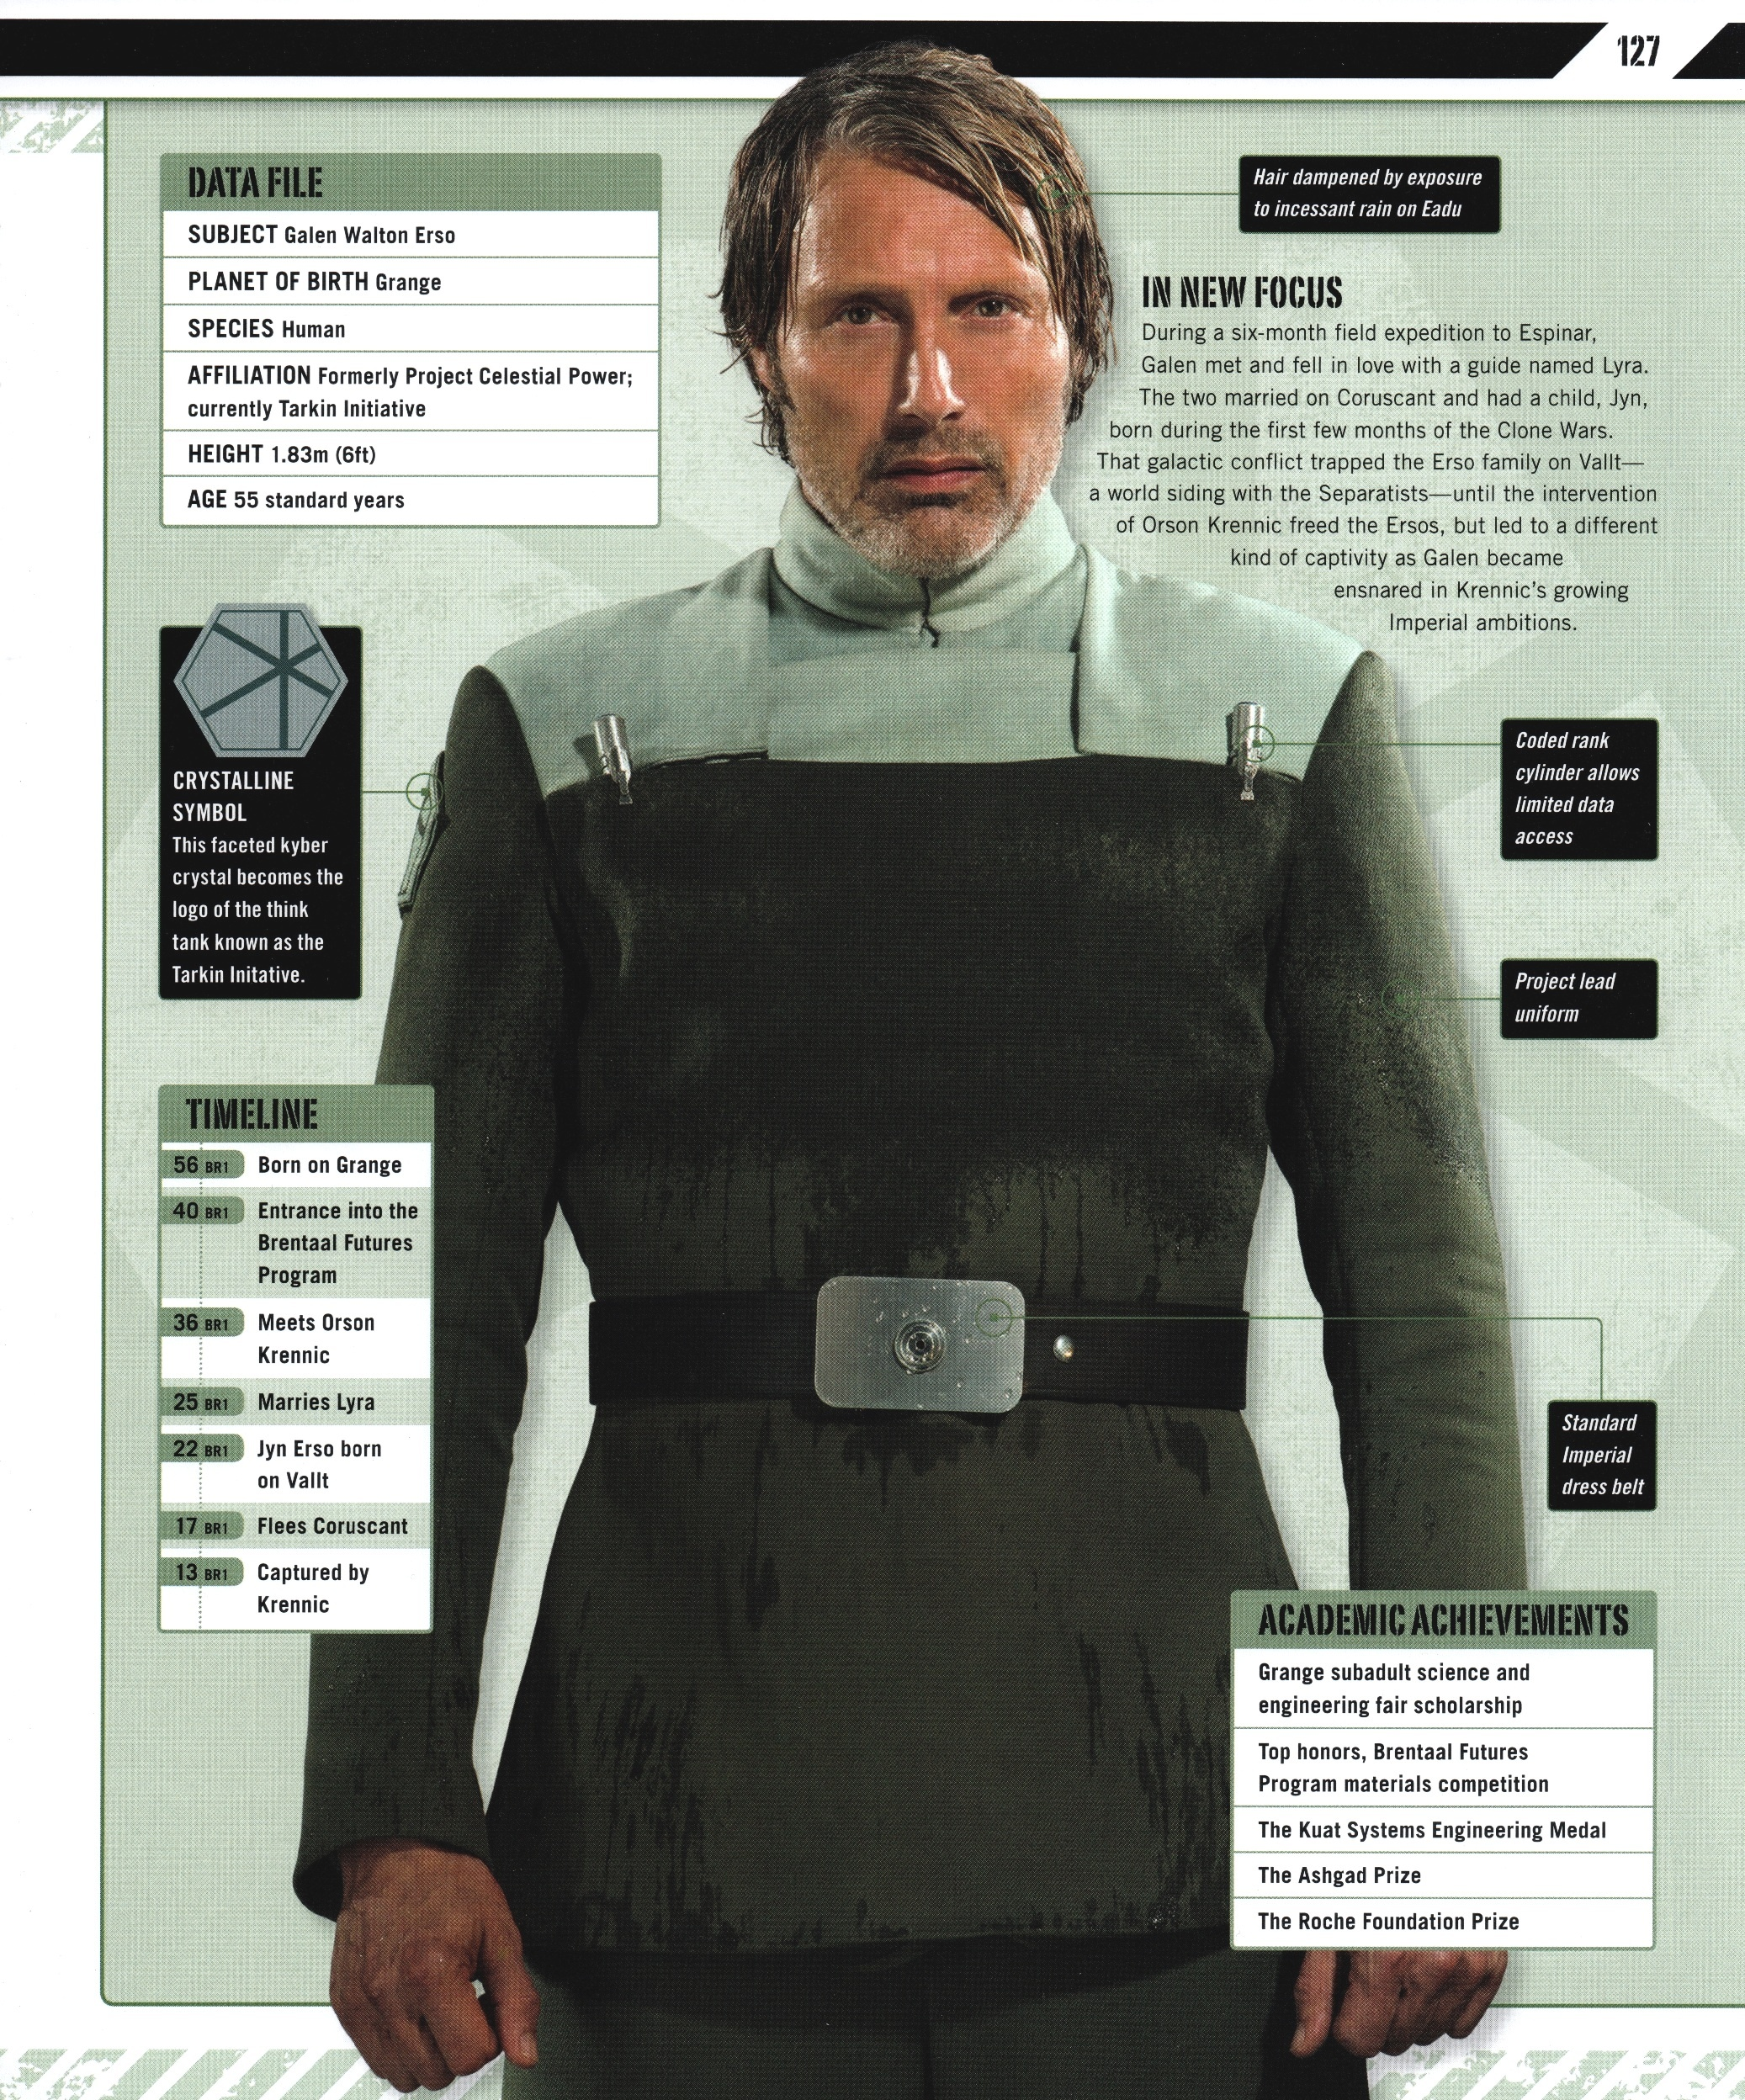 Rogue One Ultimate Visual Guide (b0bafett_Empire) p127